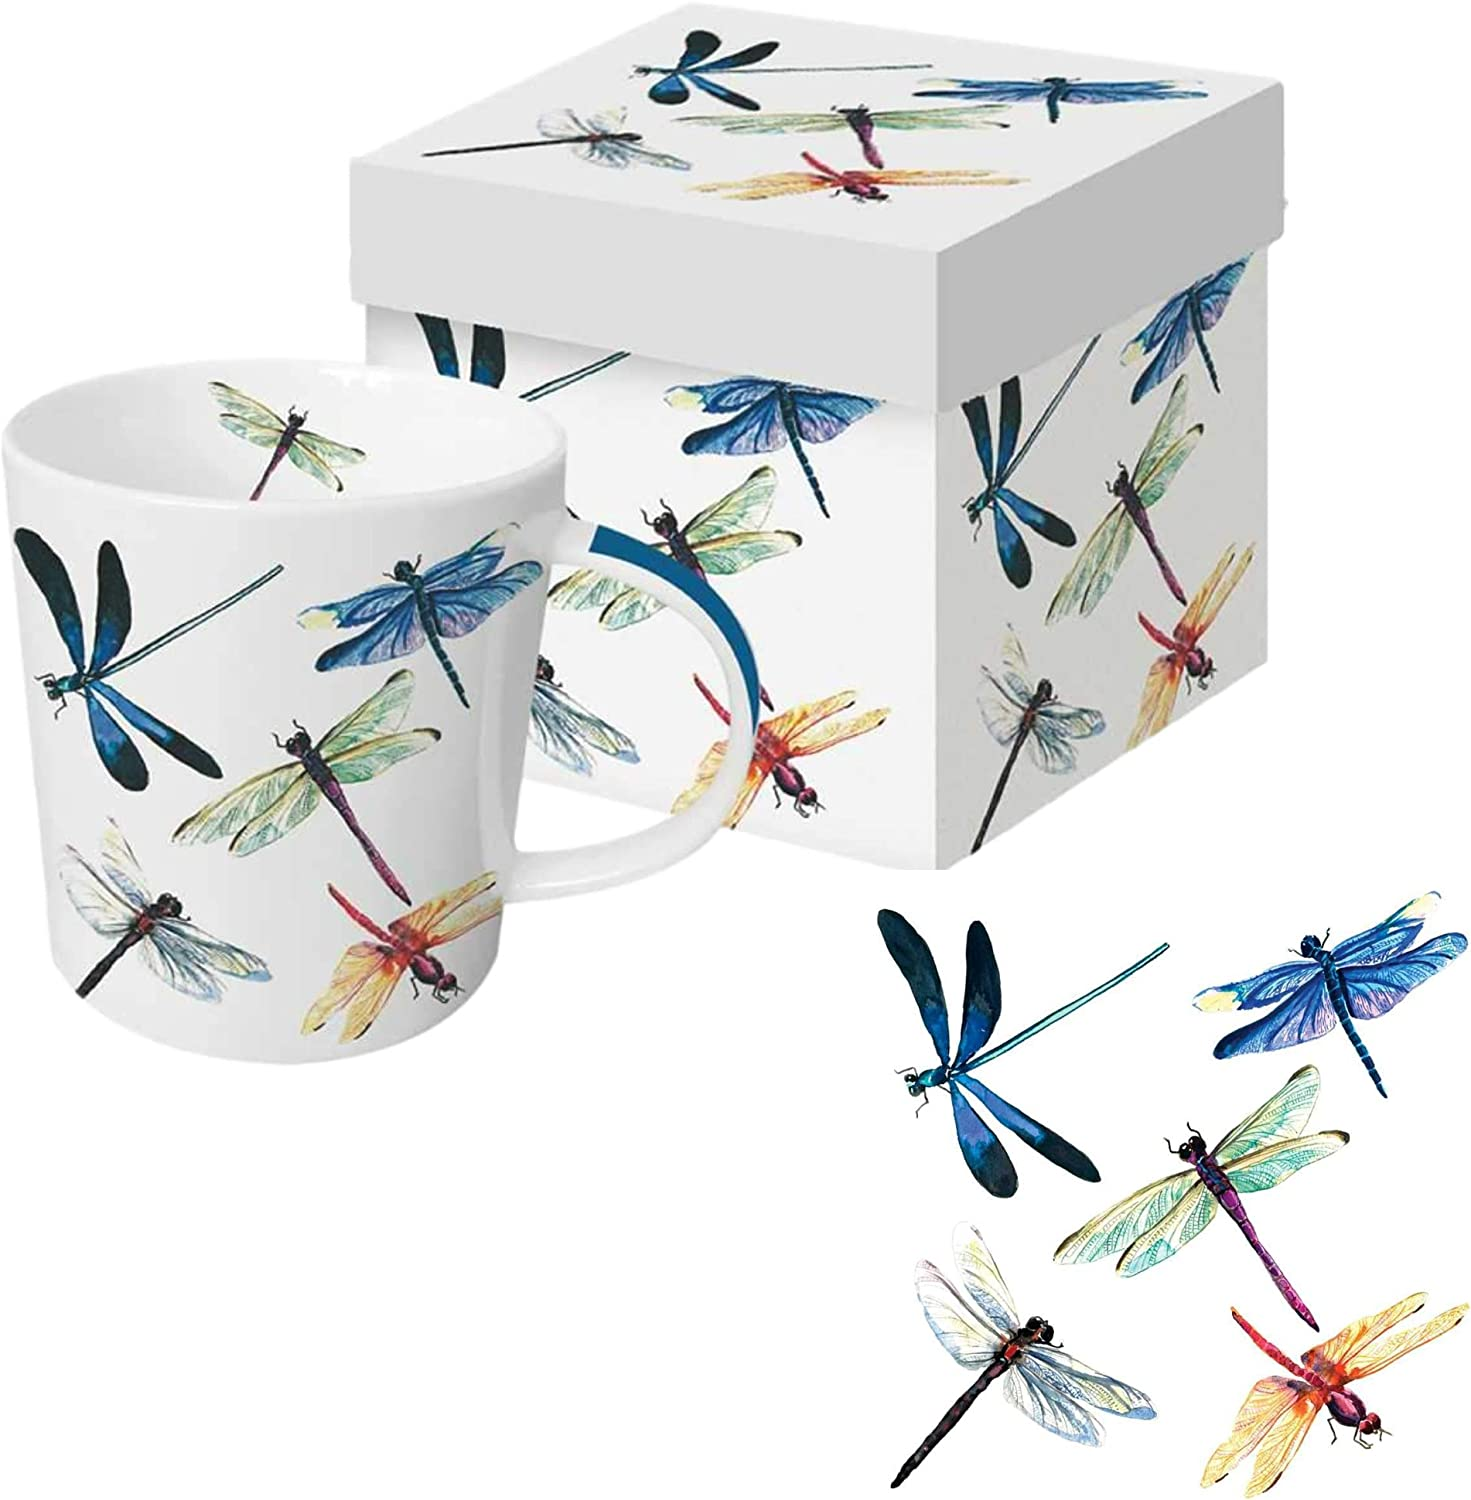 Dragonfly Coffee Mug Gift Set | Bundle Includes 13.5 Ounce Cup in Decorative Box with Matching Paper Beverage Napkins | Libelula Design